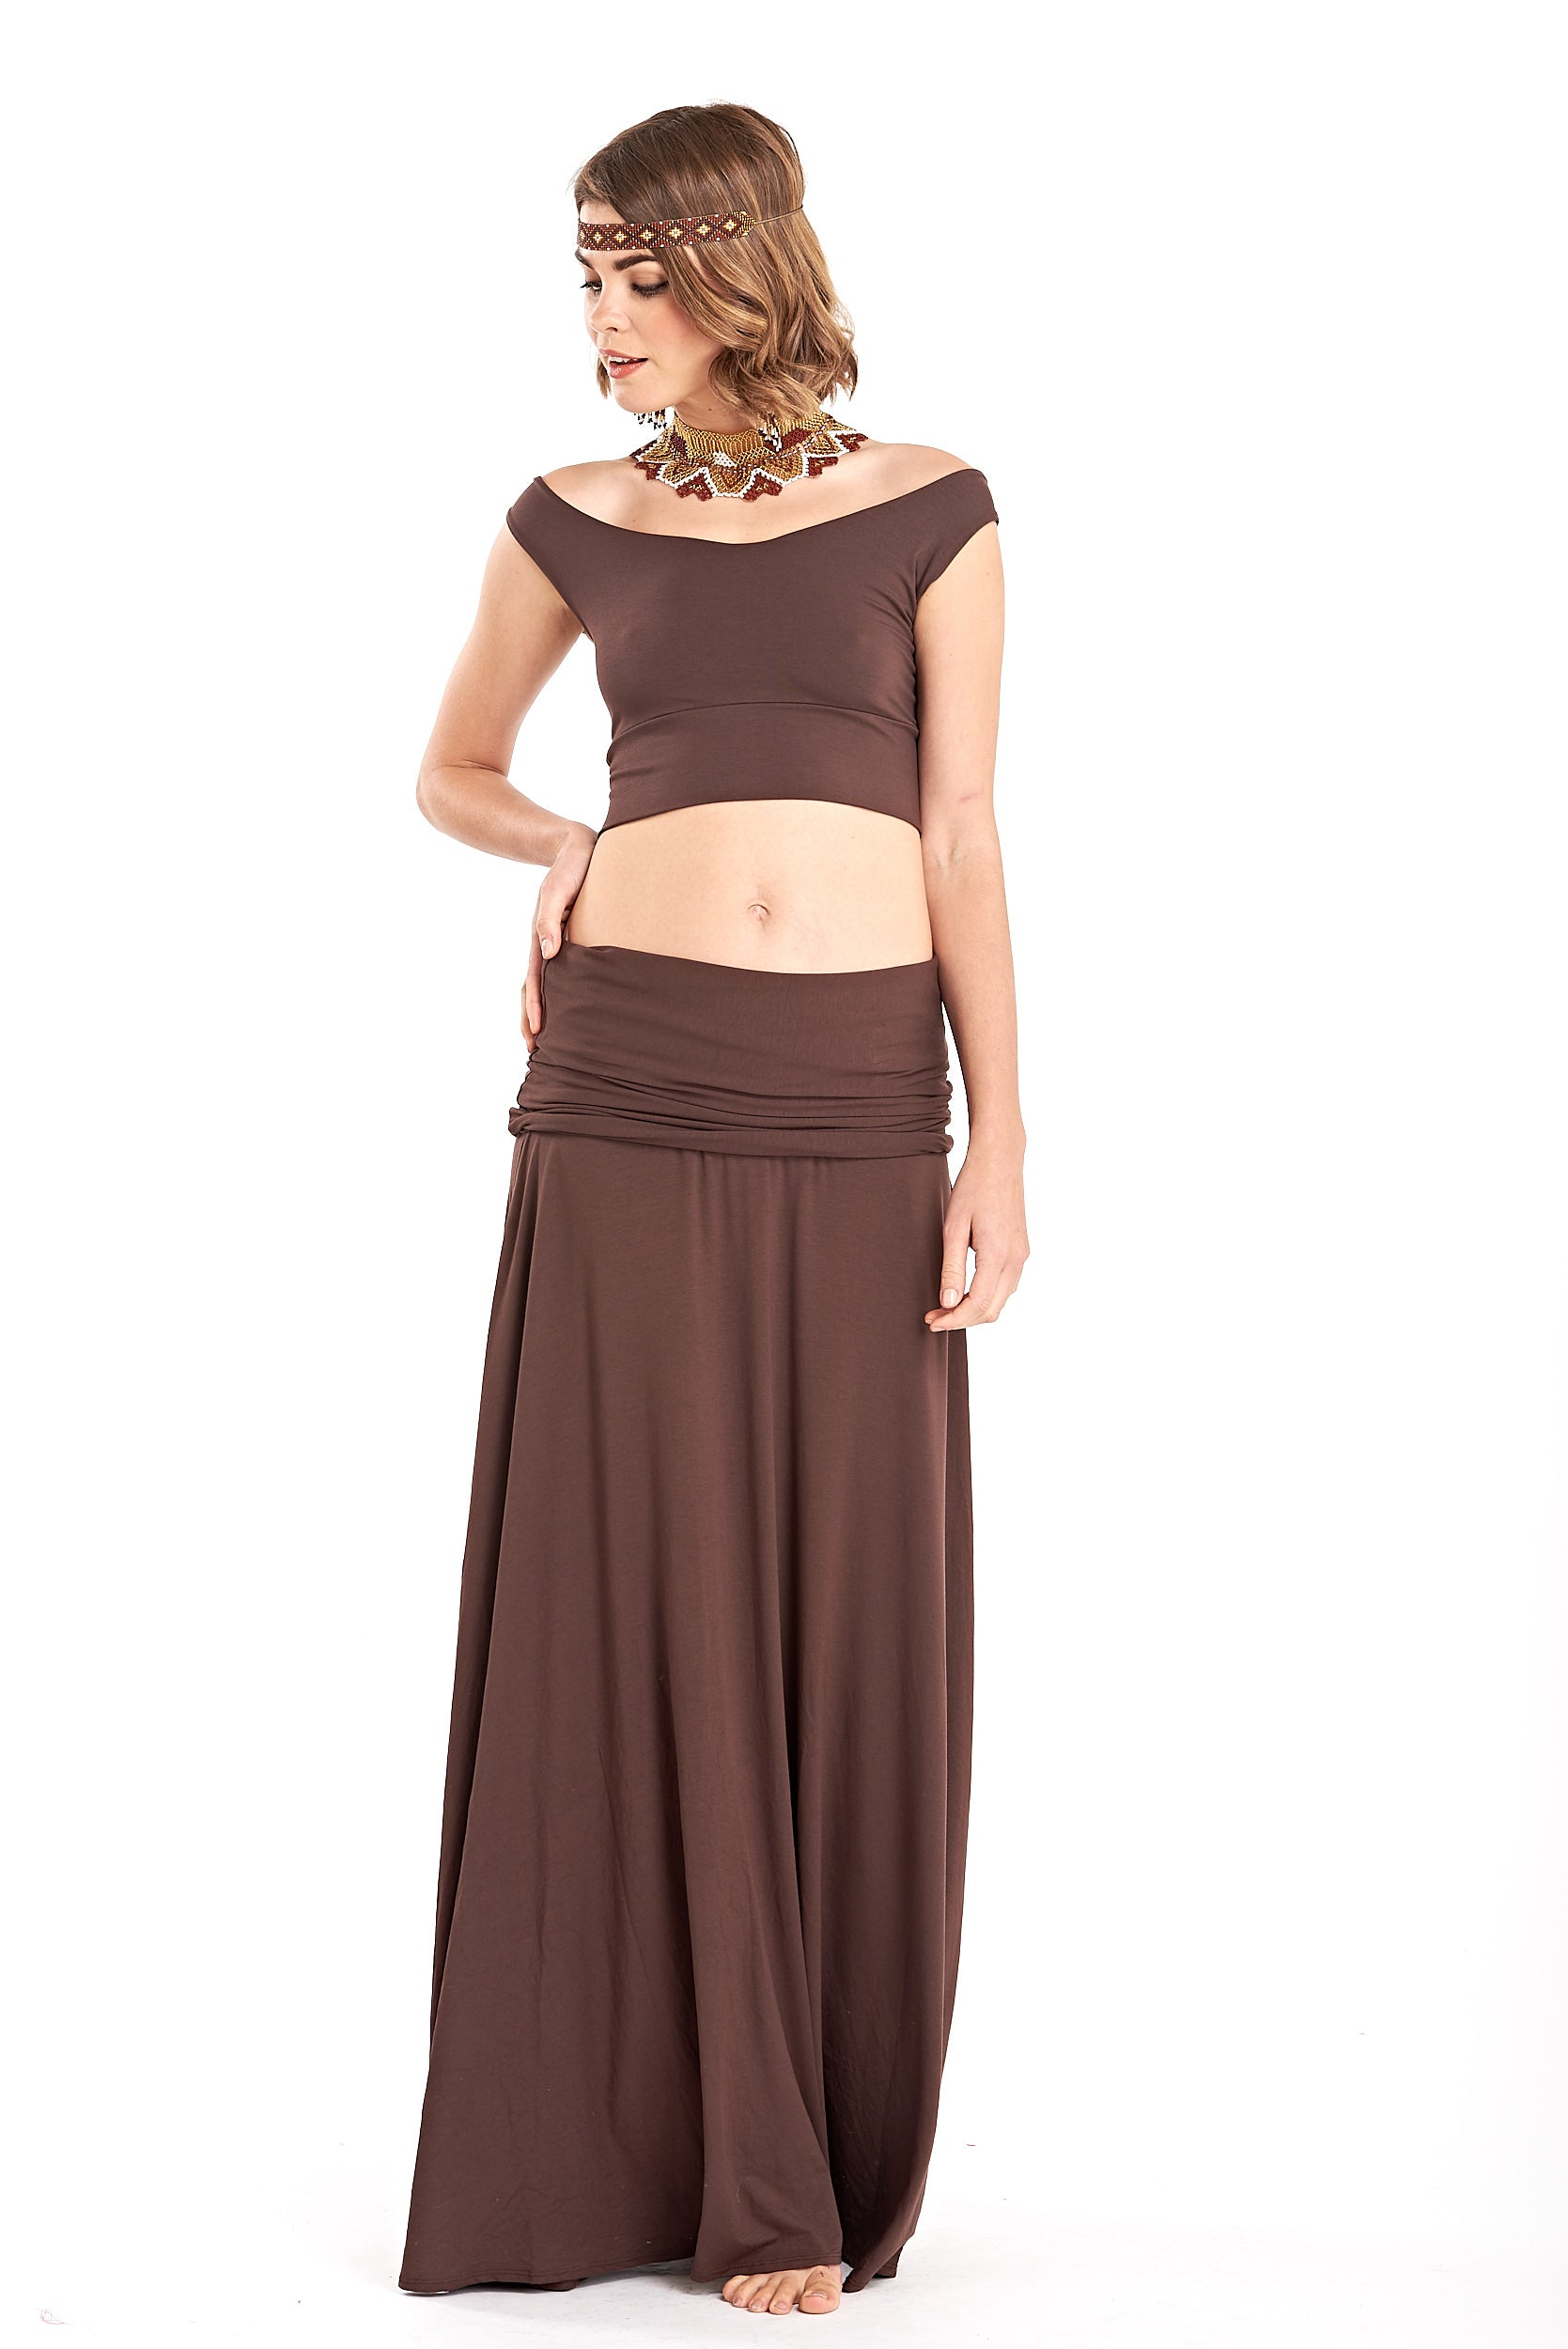 Bamboo Flamenco Skirt Brown